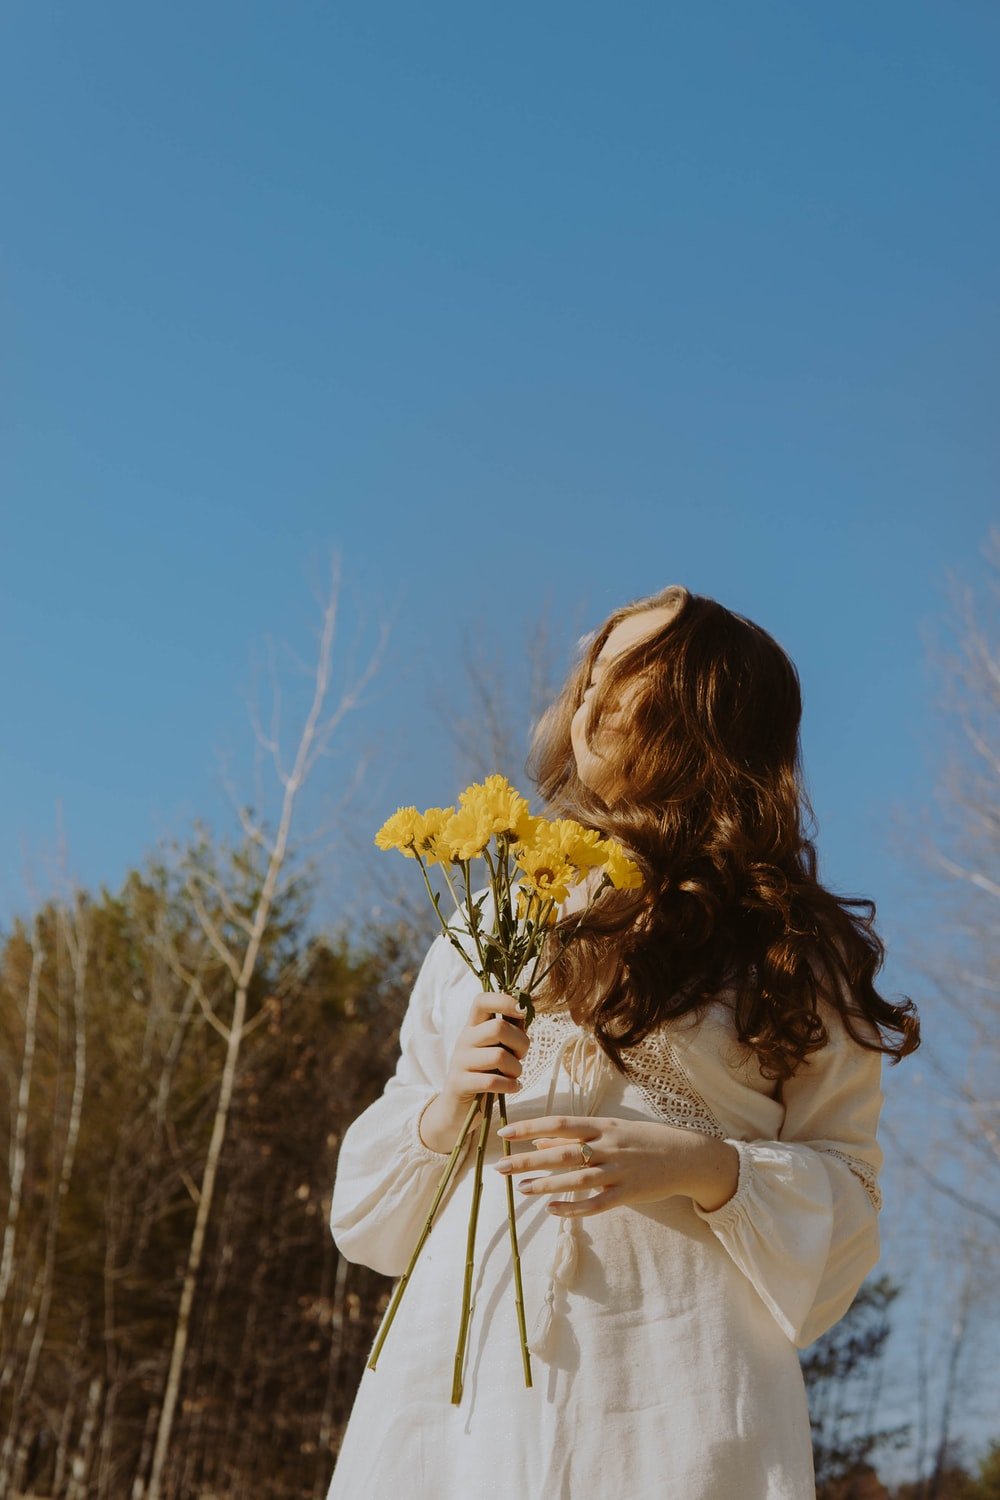 woman in white long sleeve shirt holding yellow flower during daytime